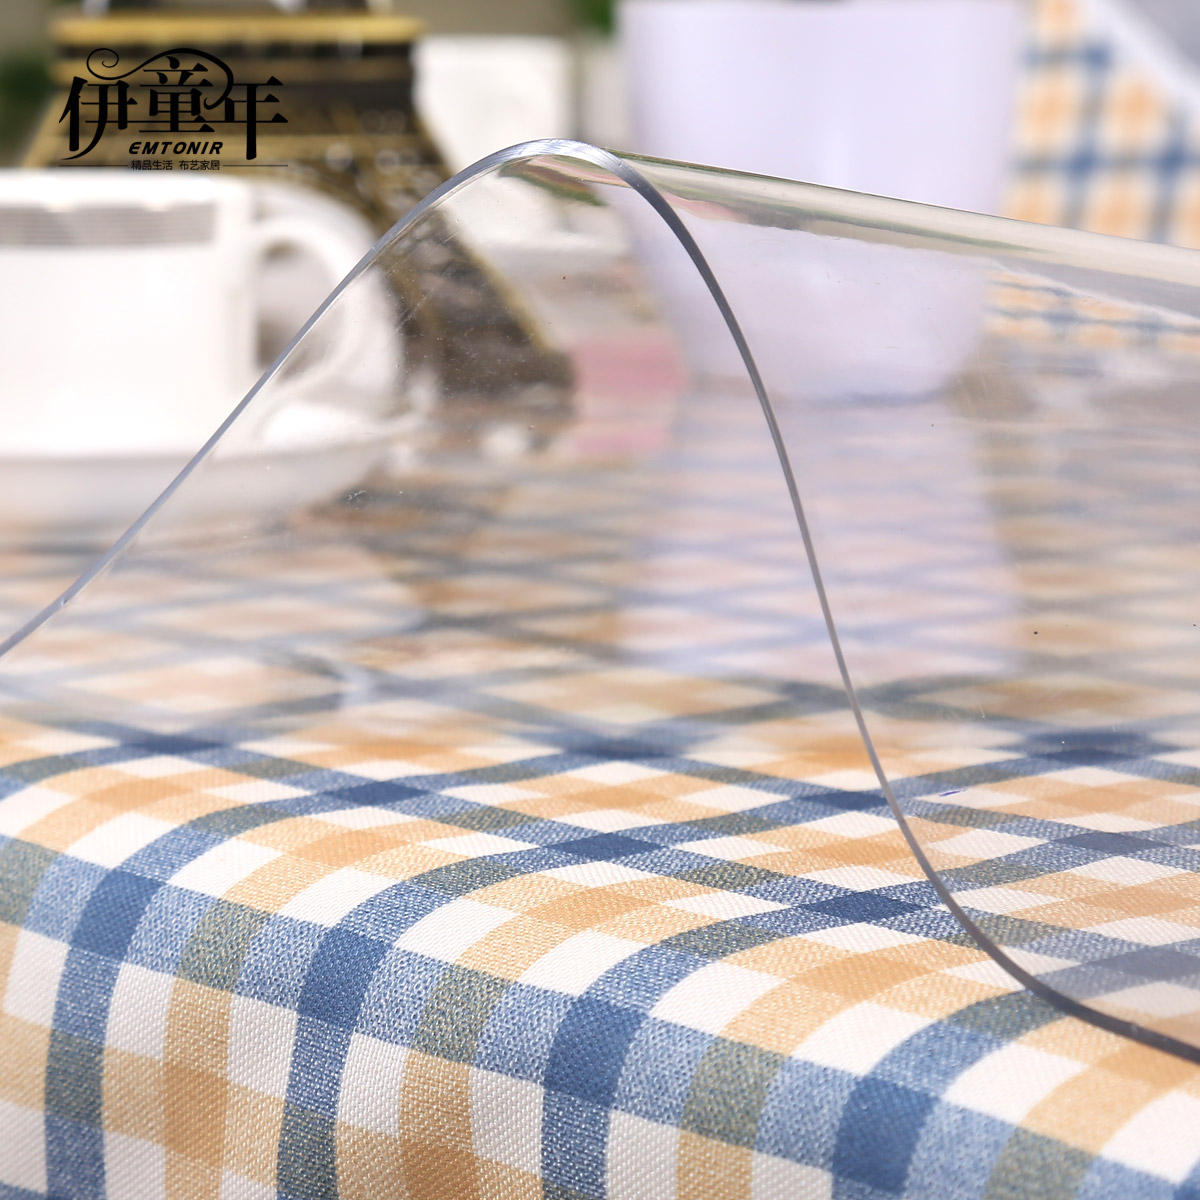 Home furnishing oil proof disposable transparent tablecloth tablecover PVC table cloth hotel soft glass mat manteles para toalha in Tablecloths from Home Garden